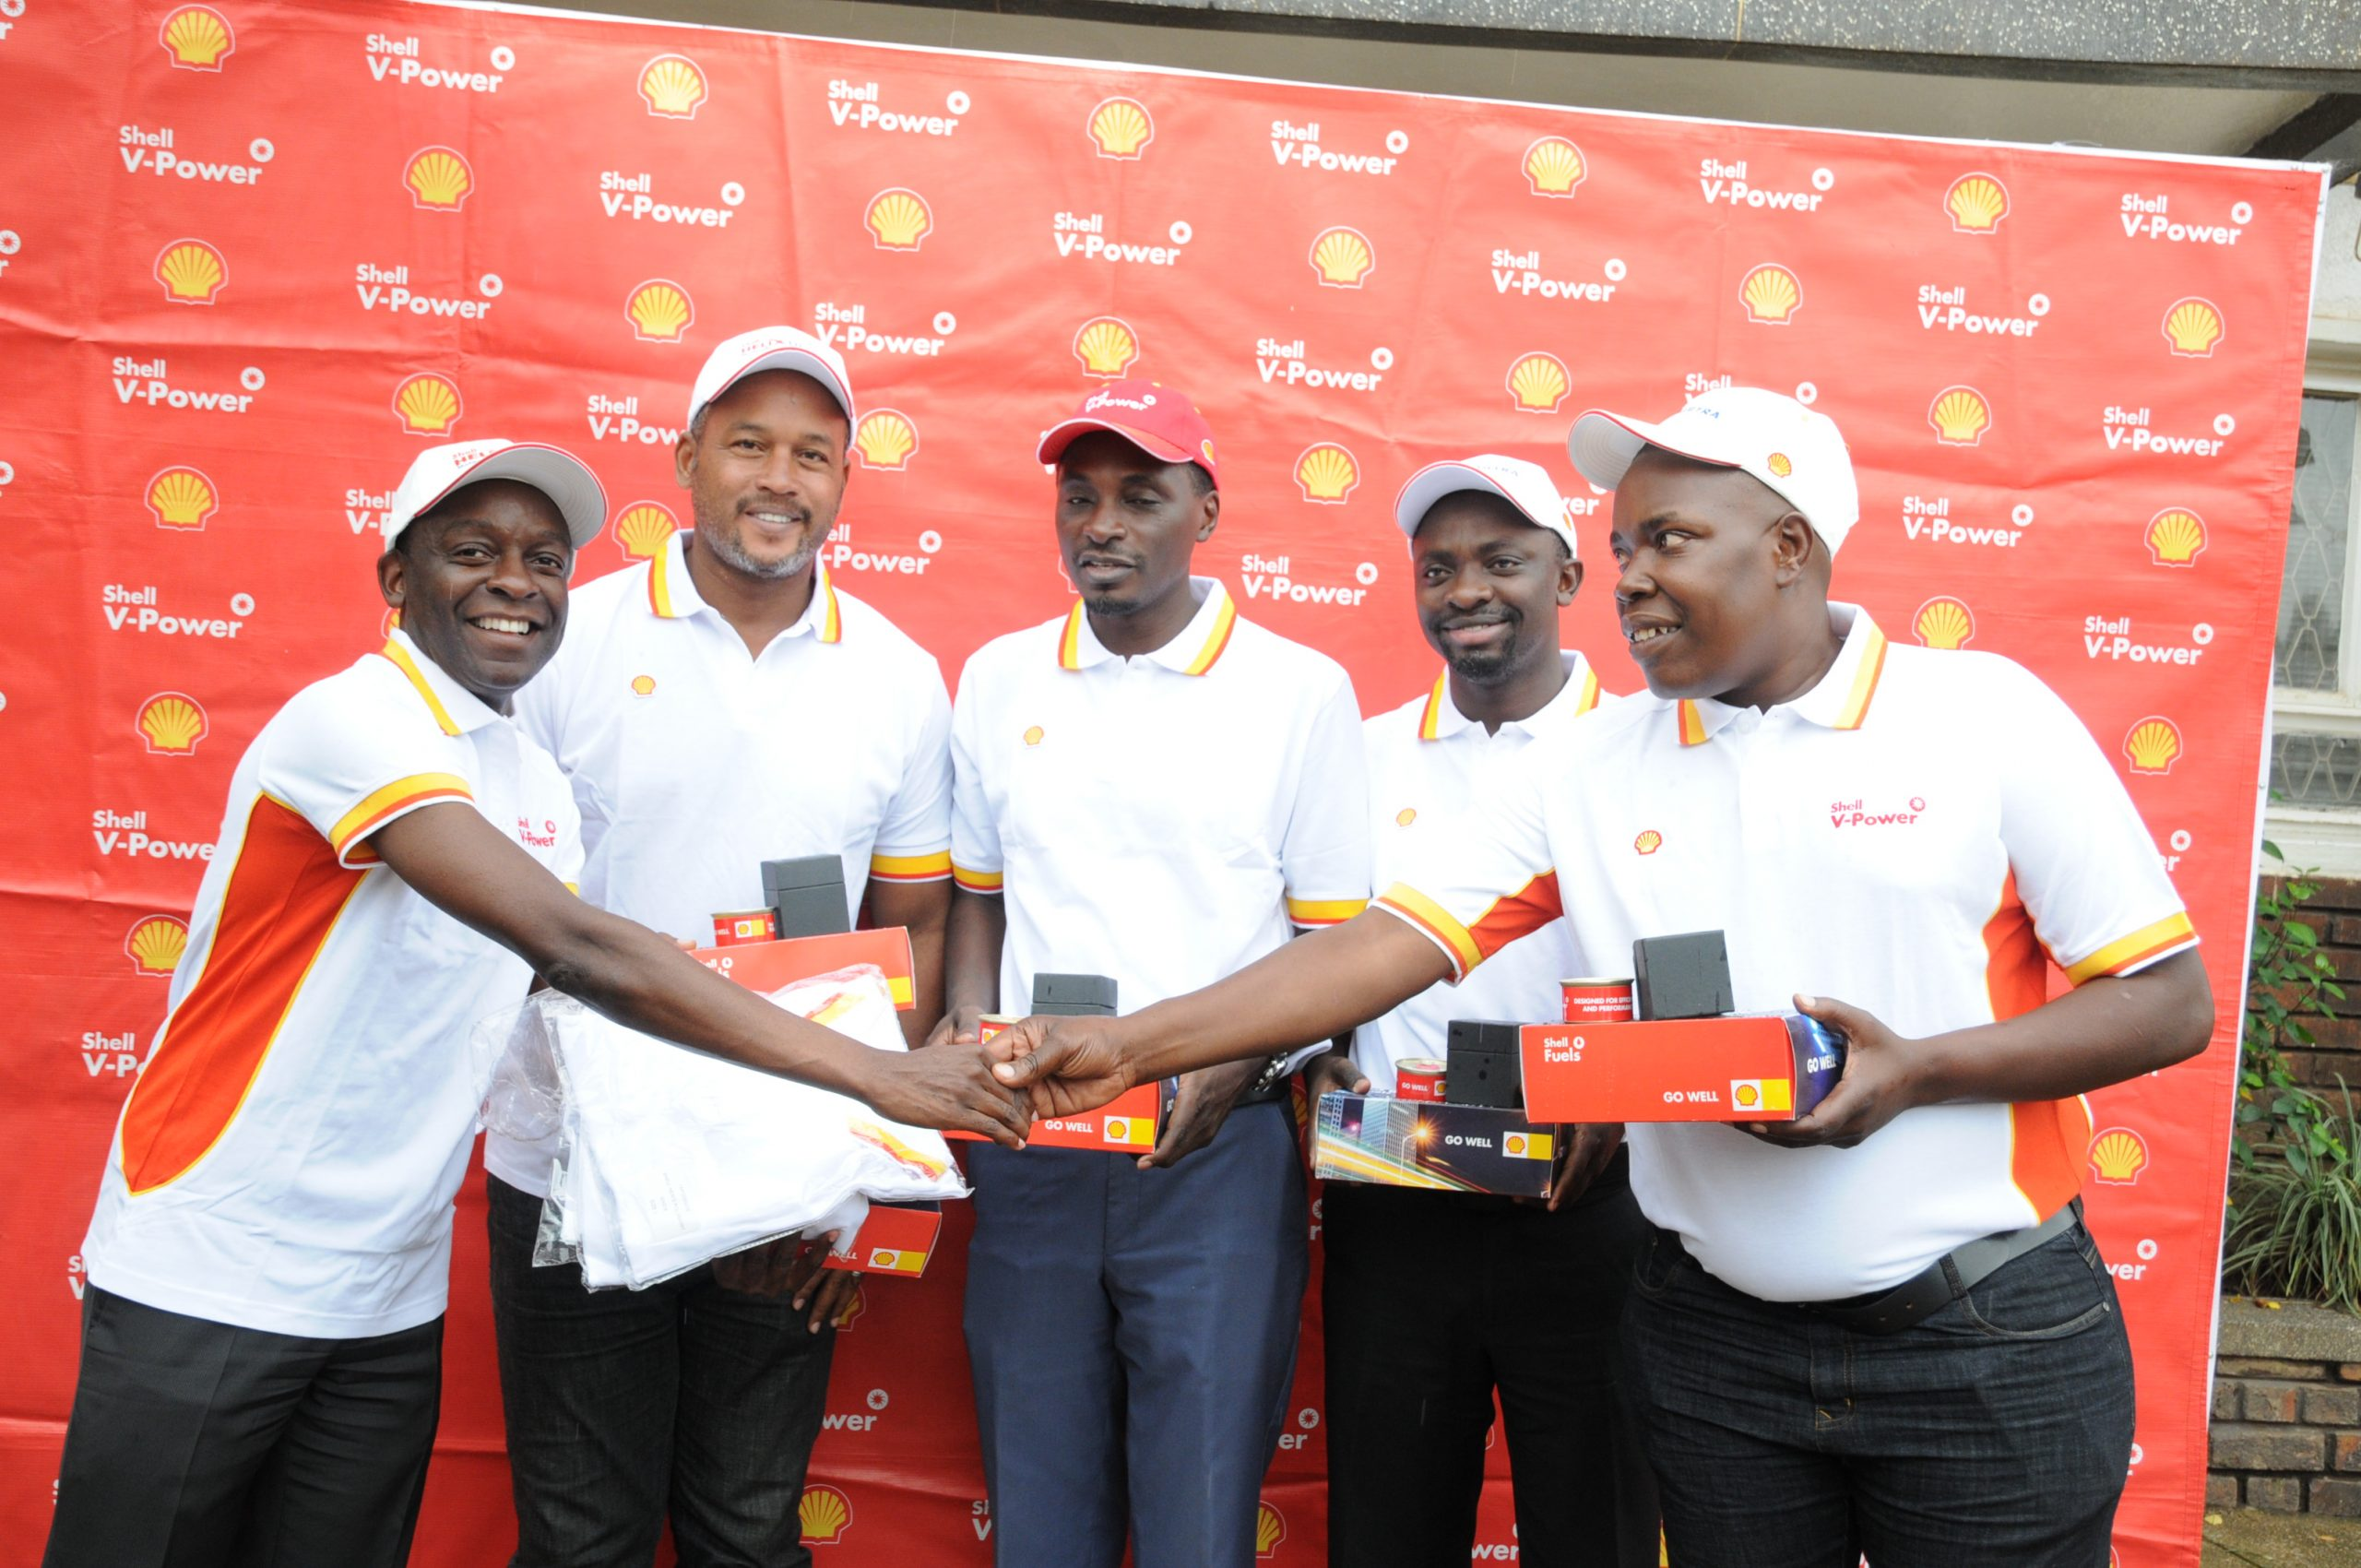 Vivo Energy Marketing Manager Moses Kebba hands over fuel vouchers and goodies to Shell rally drivers Arthur Blick, Omar Mayanja, Umar Kakyama and Ronald Sebuguzi.